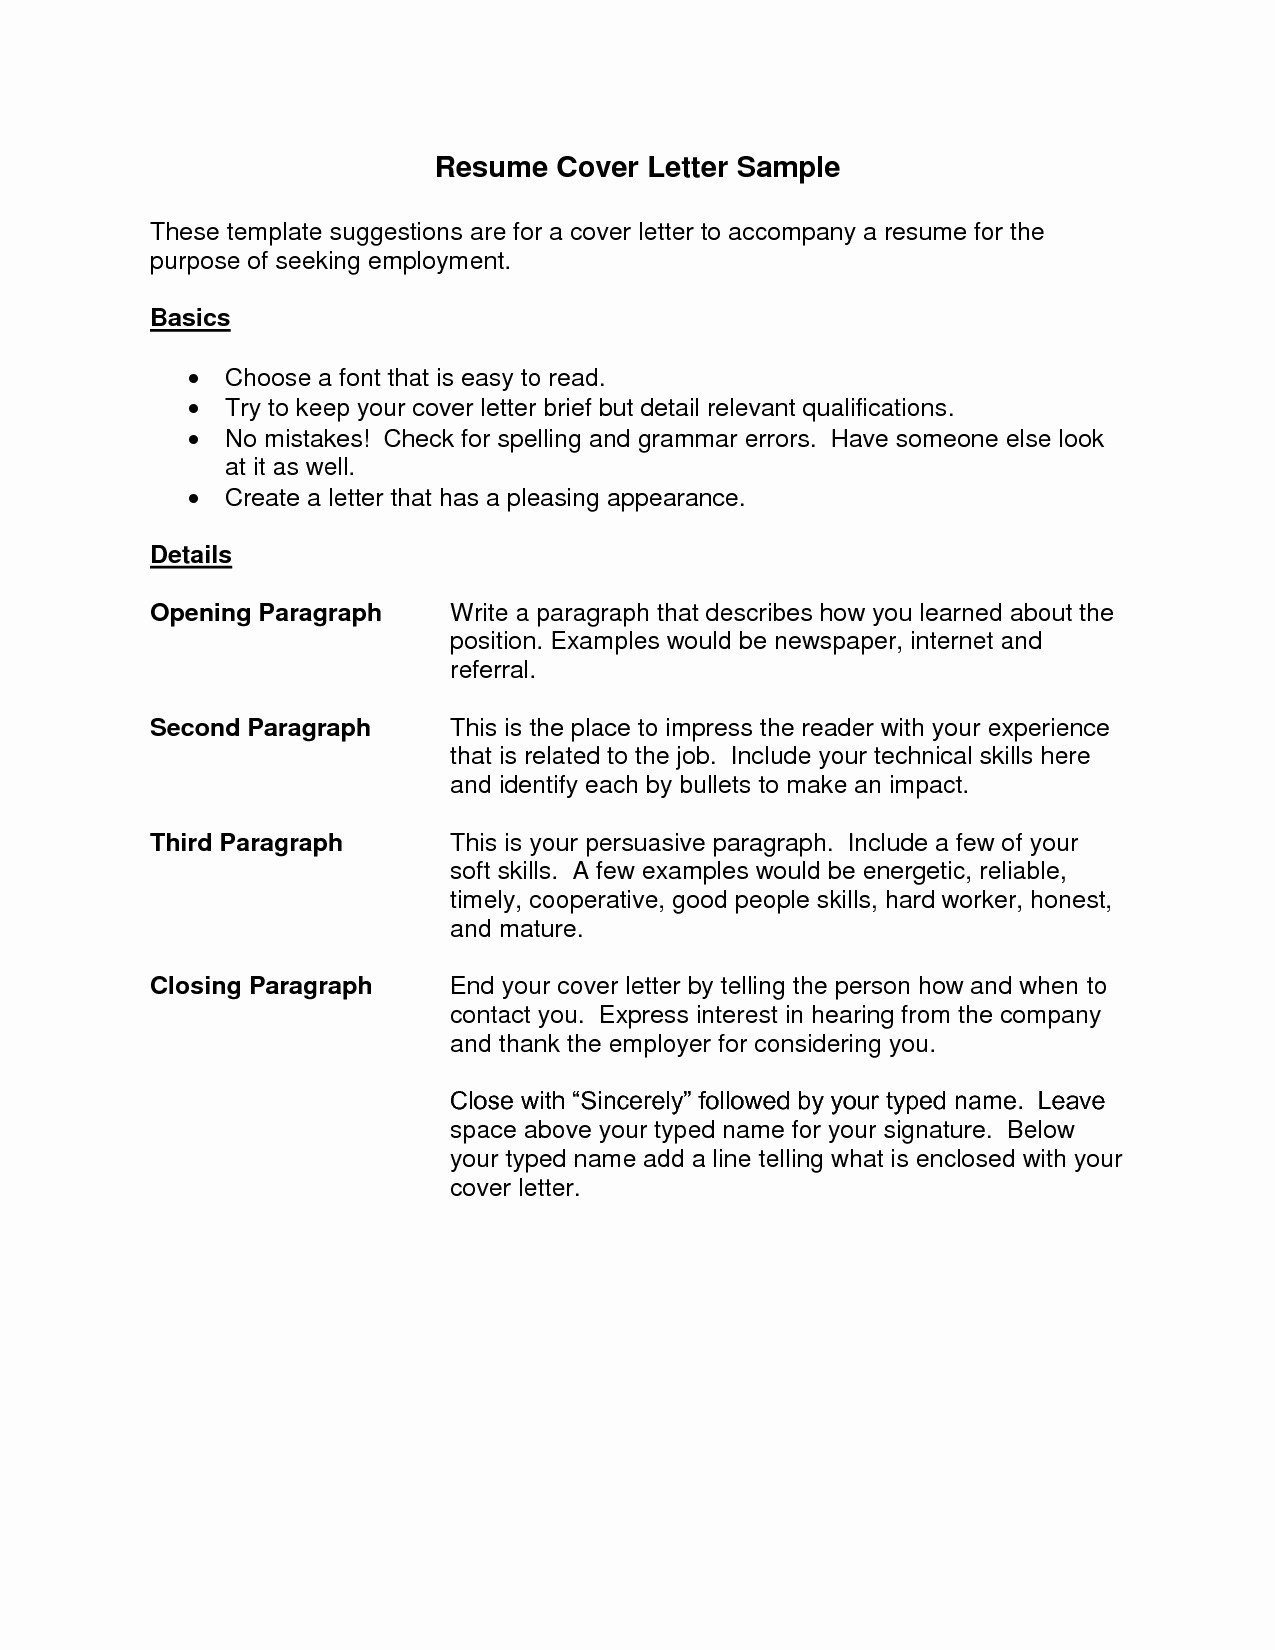 Simple Resume Cover Letter Template Elegant Example Cover Letter for Resume Template